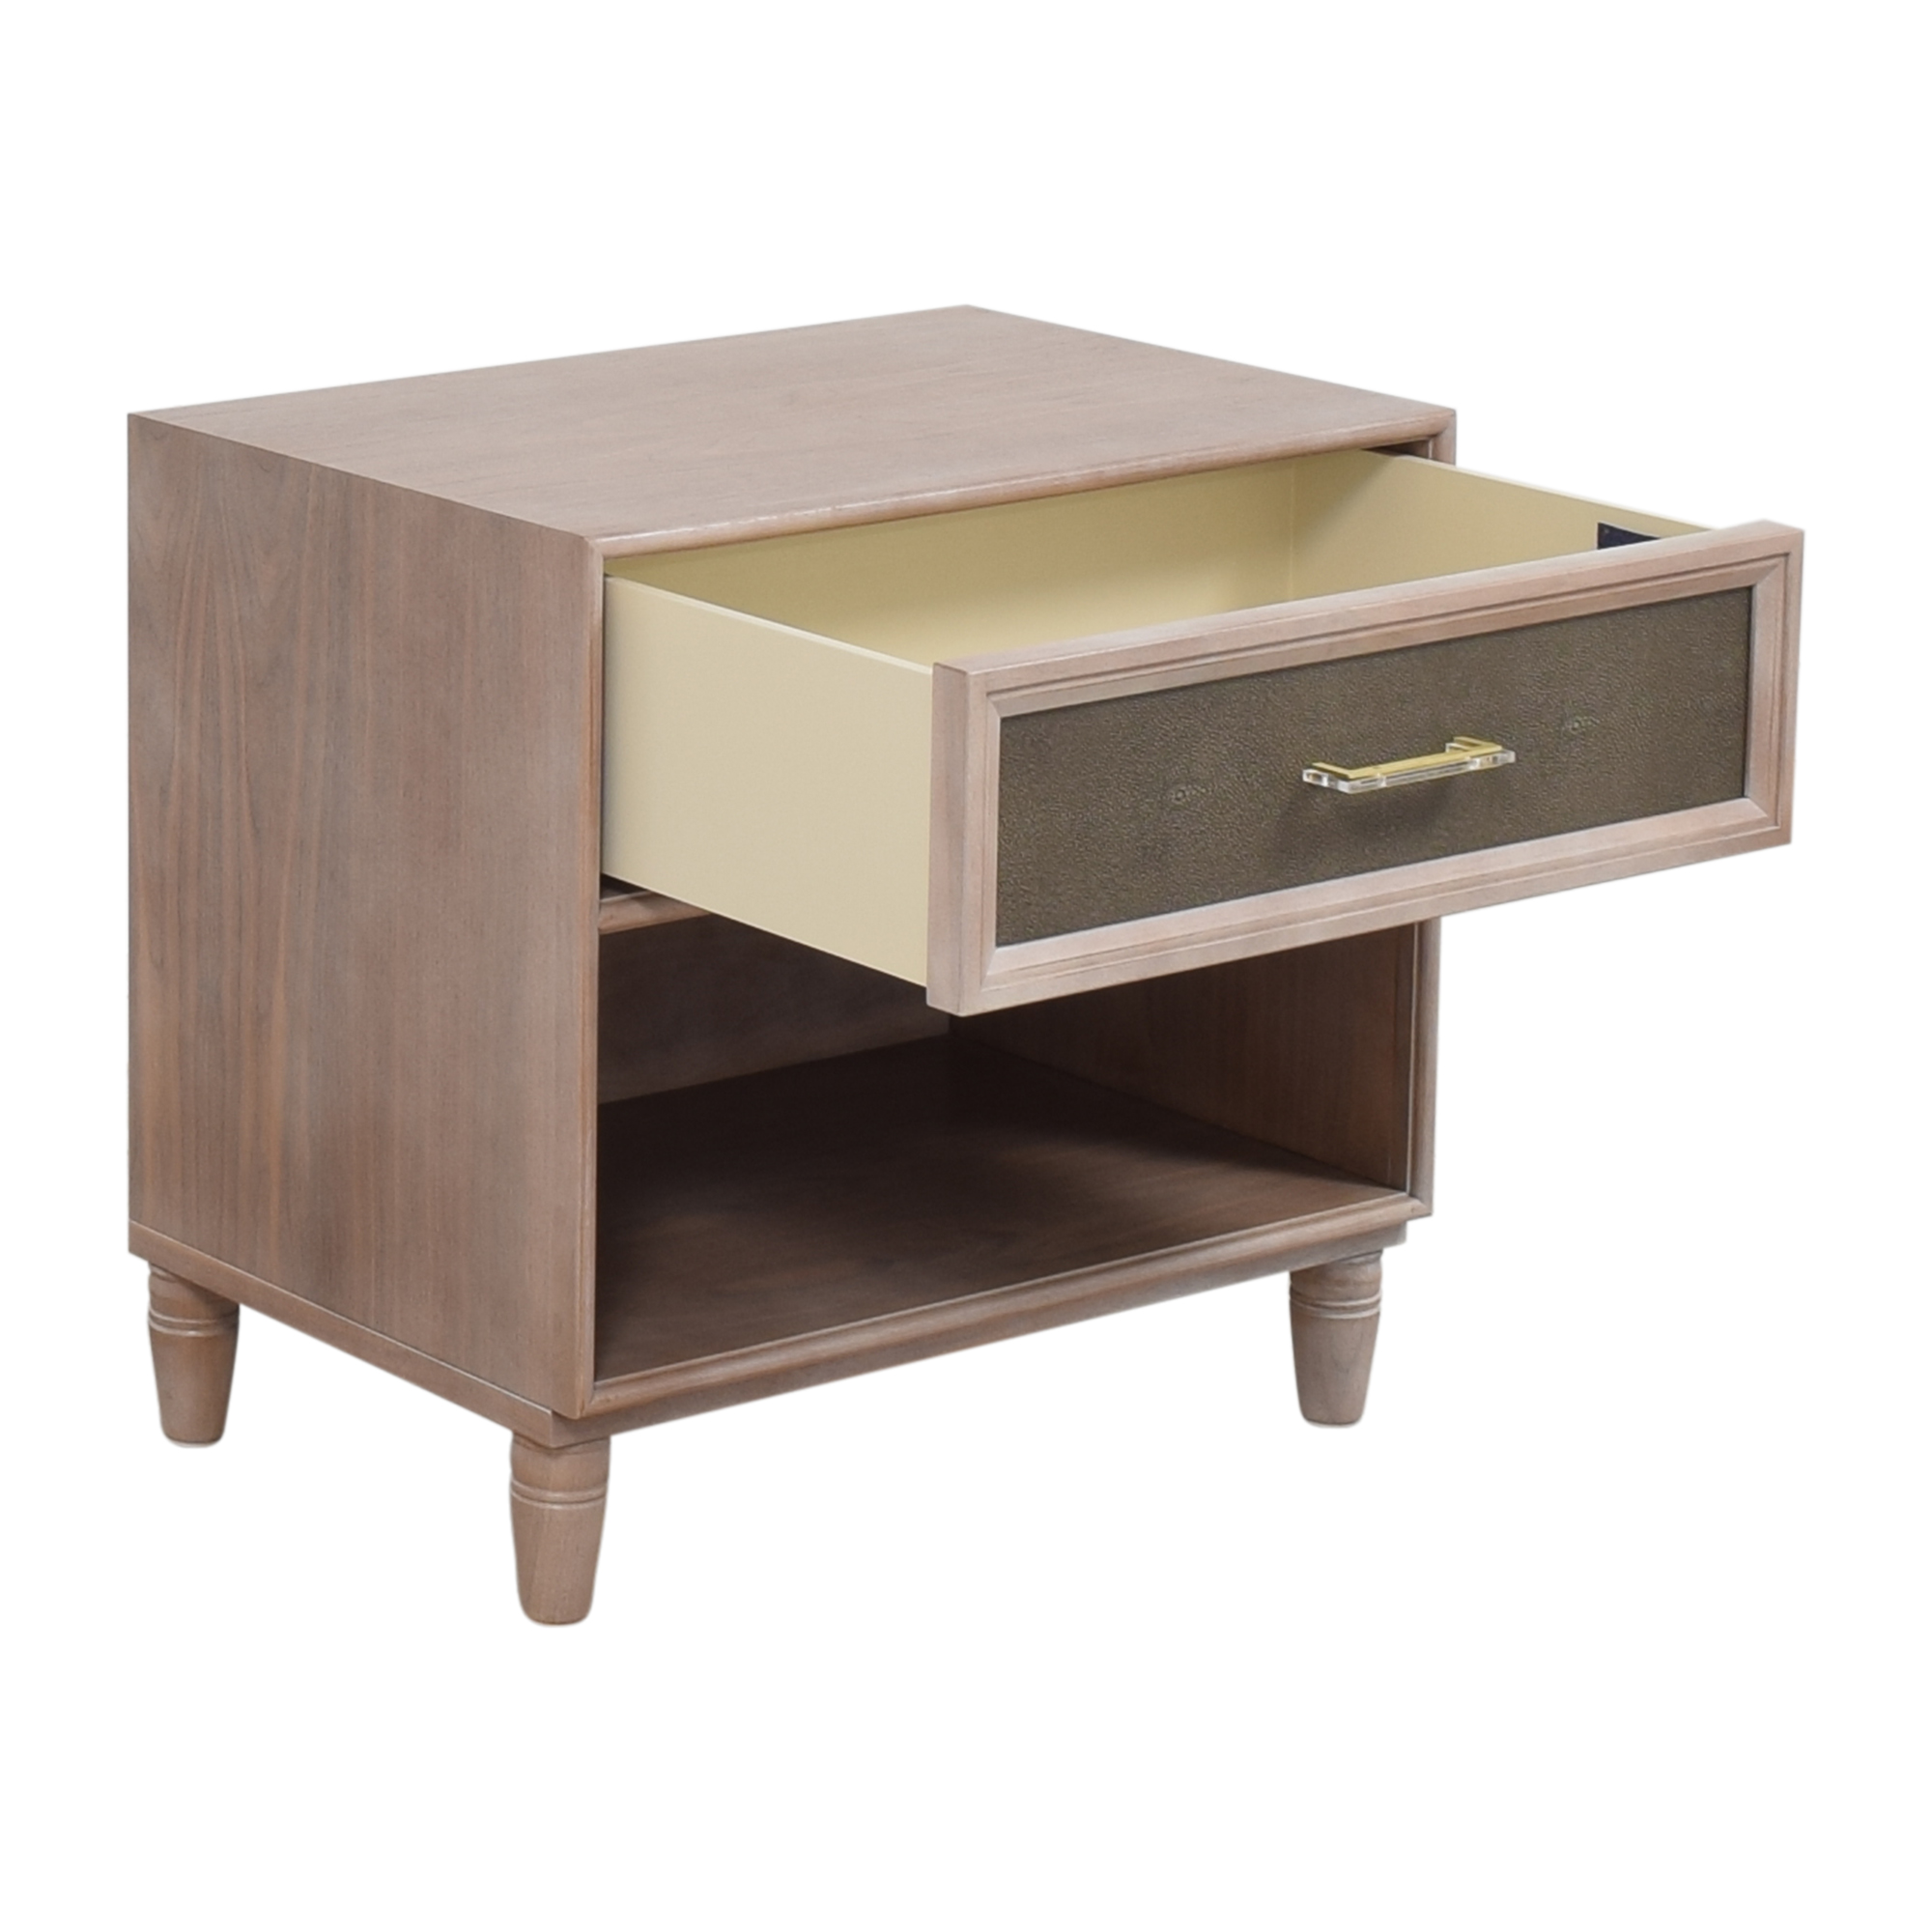 The New Traditionalists The New Traditionalists Single Drawer End Table for sale